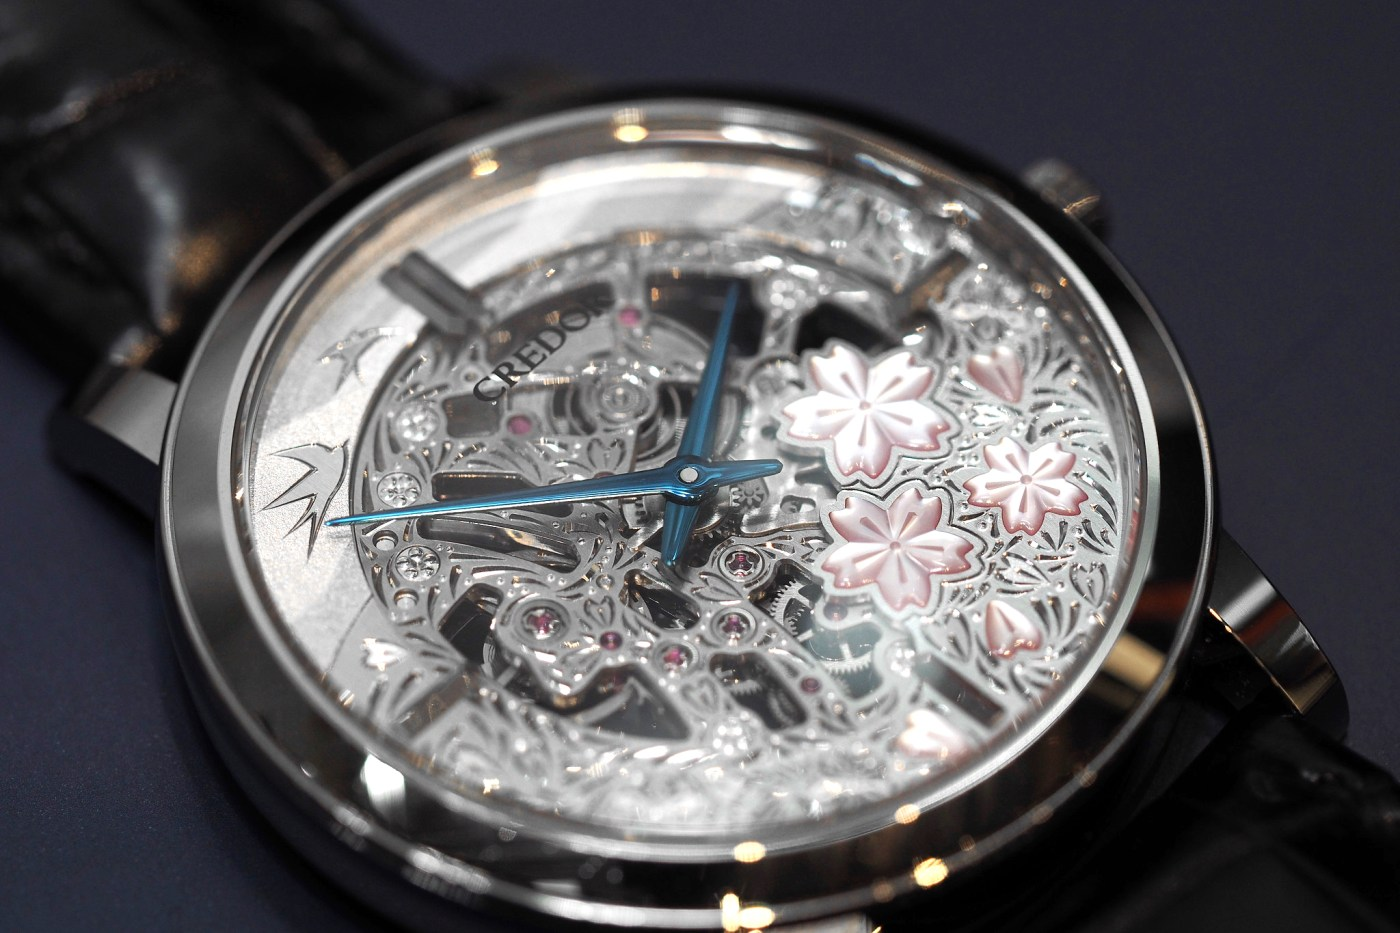 Credor Ref. GBBD965 hand engraved dial